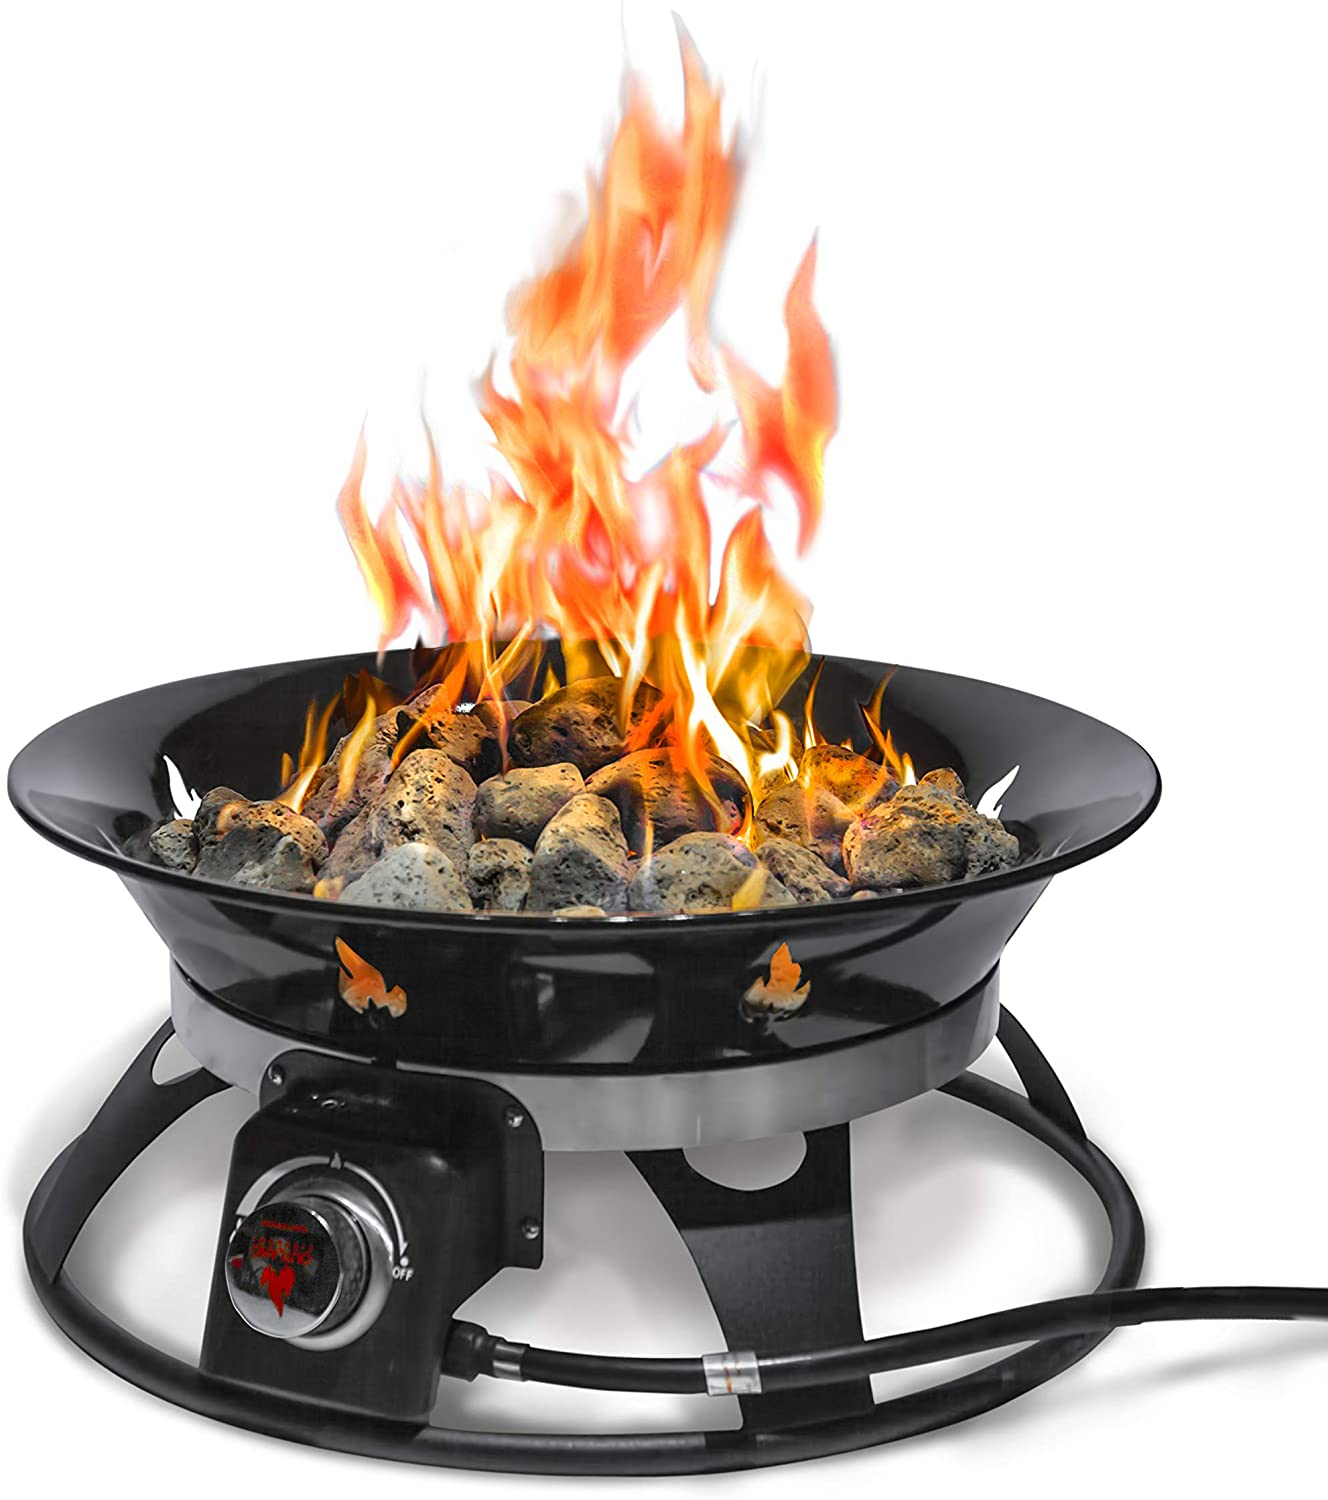 propane fire pit when there is a fire ban?